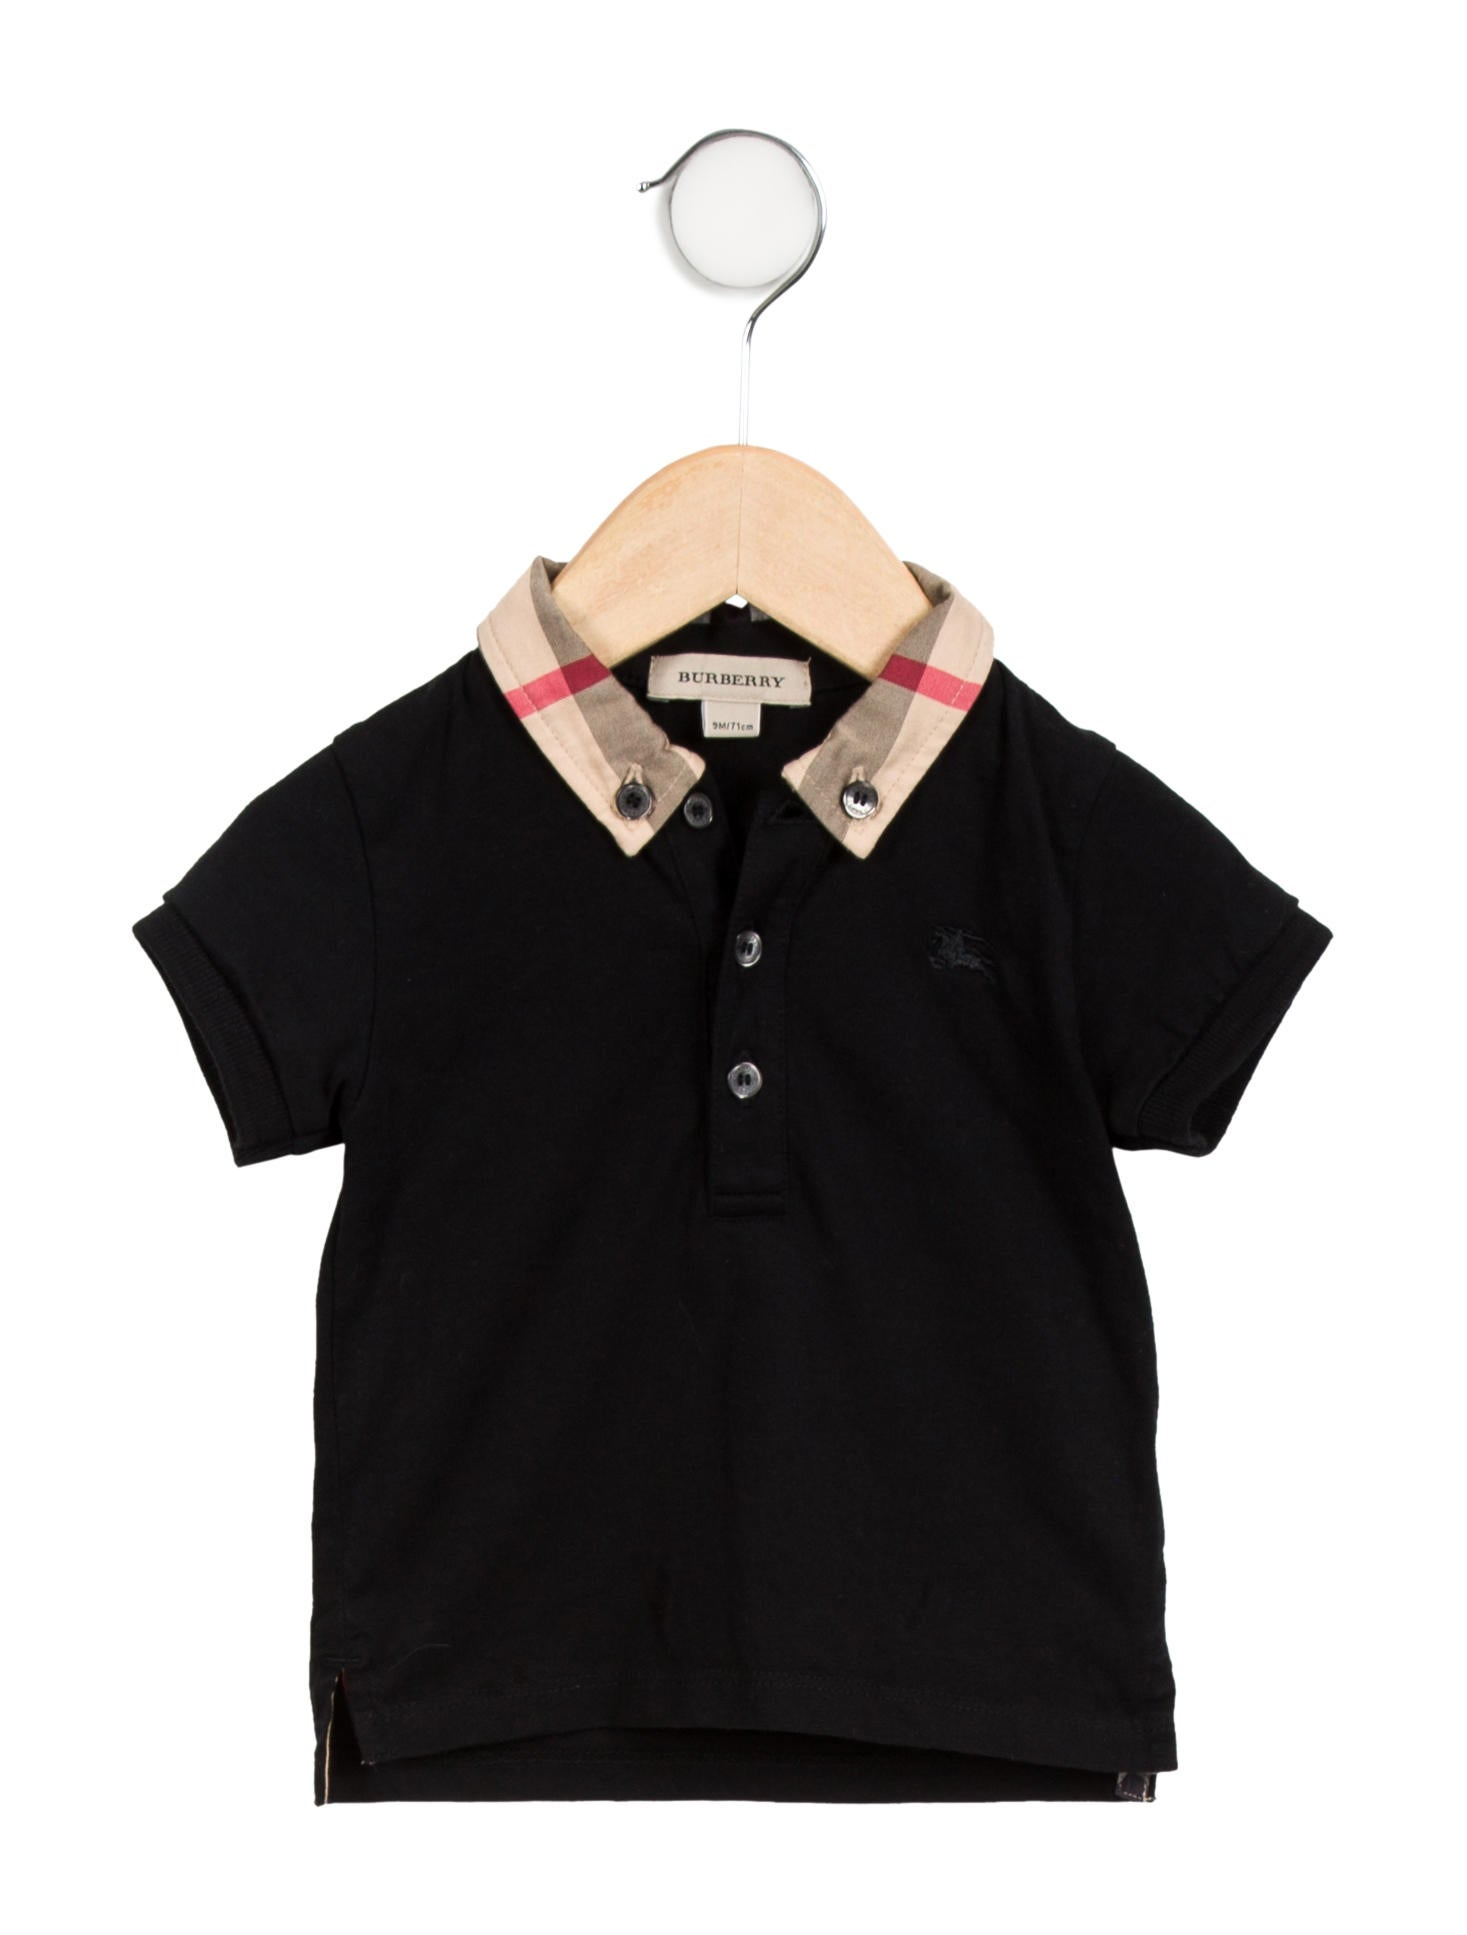 burberry baby polo shirt